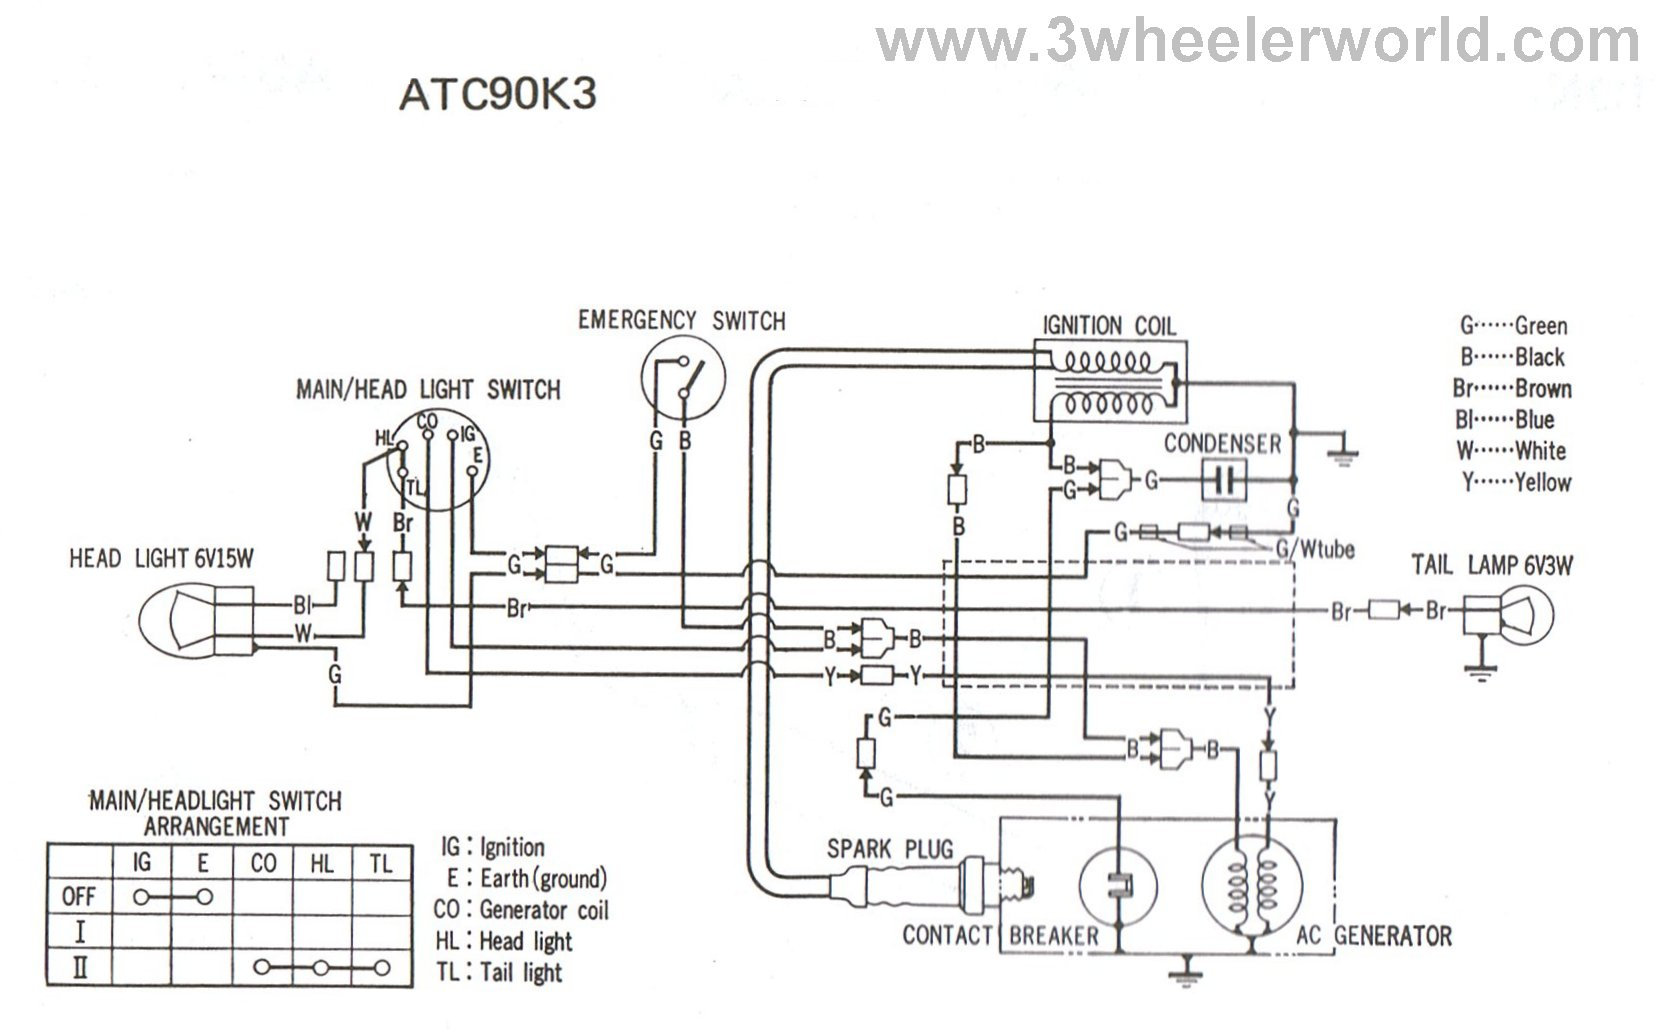 viper anchor winch wiring diagram emg select pickup best library 2005 polaris snowmobile schematic name ranger 800